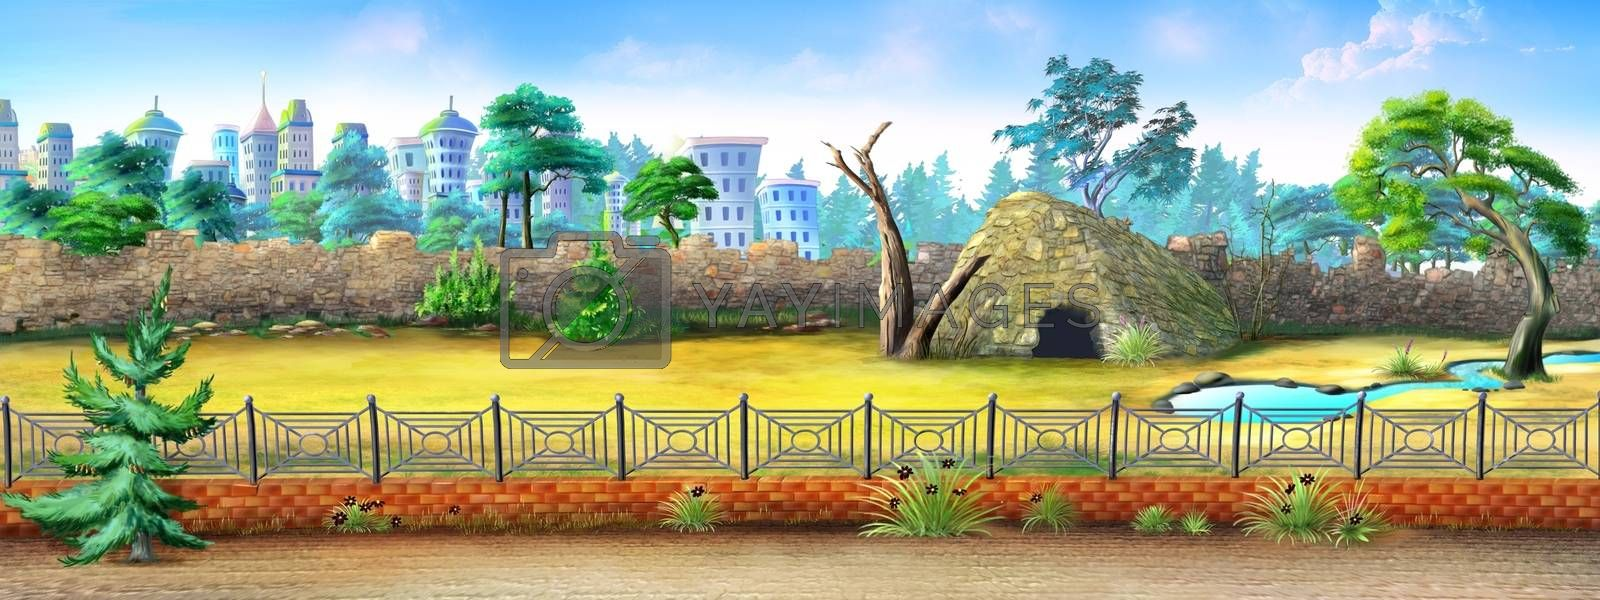 Digital painting of the City Zoo with fence, trees and small animal house.